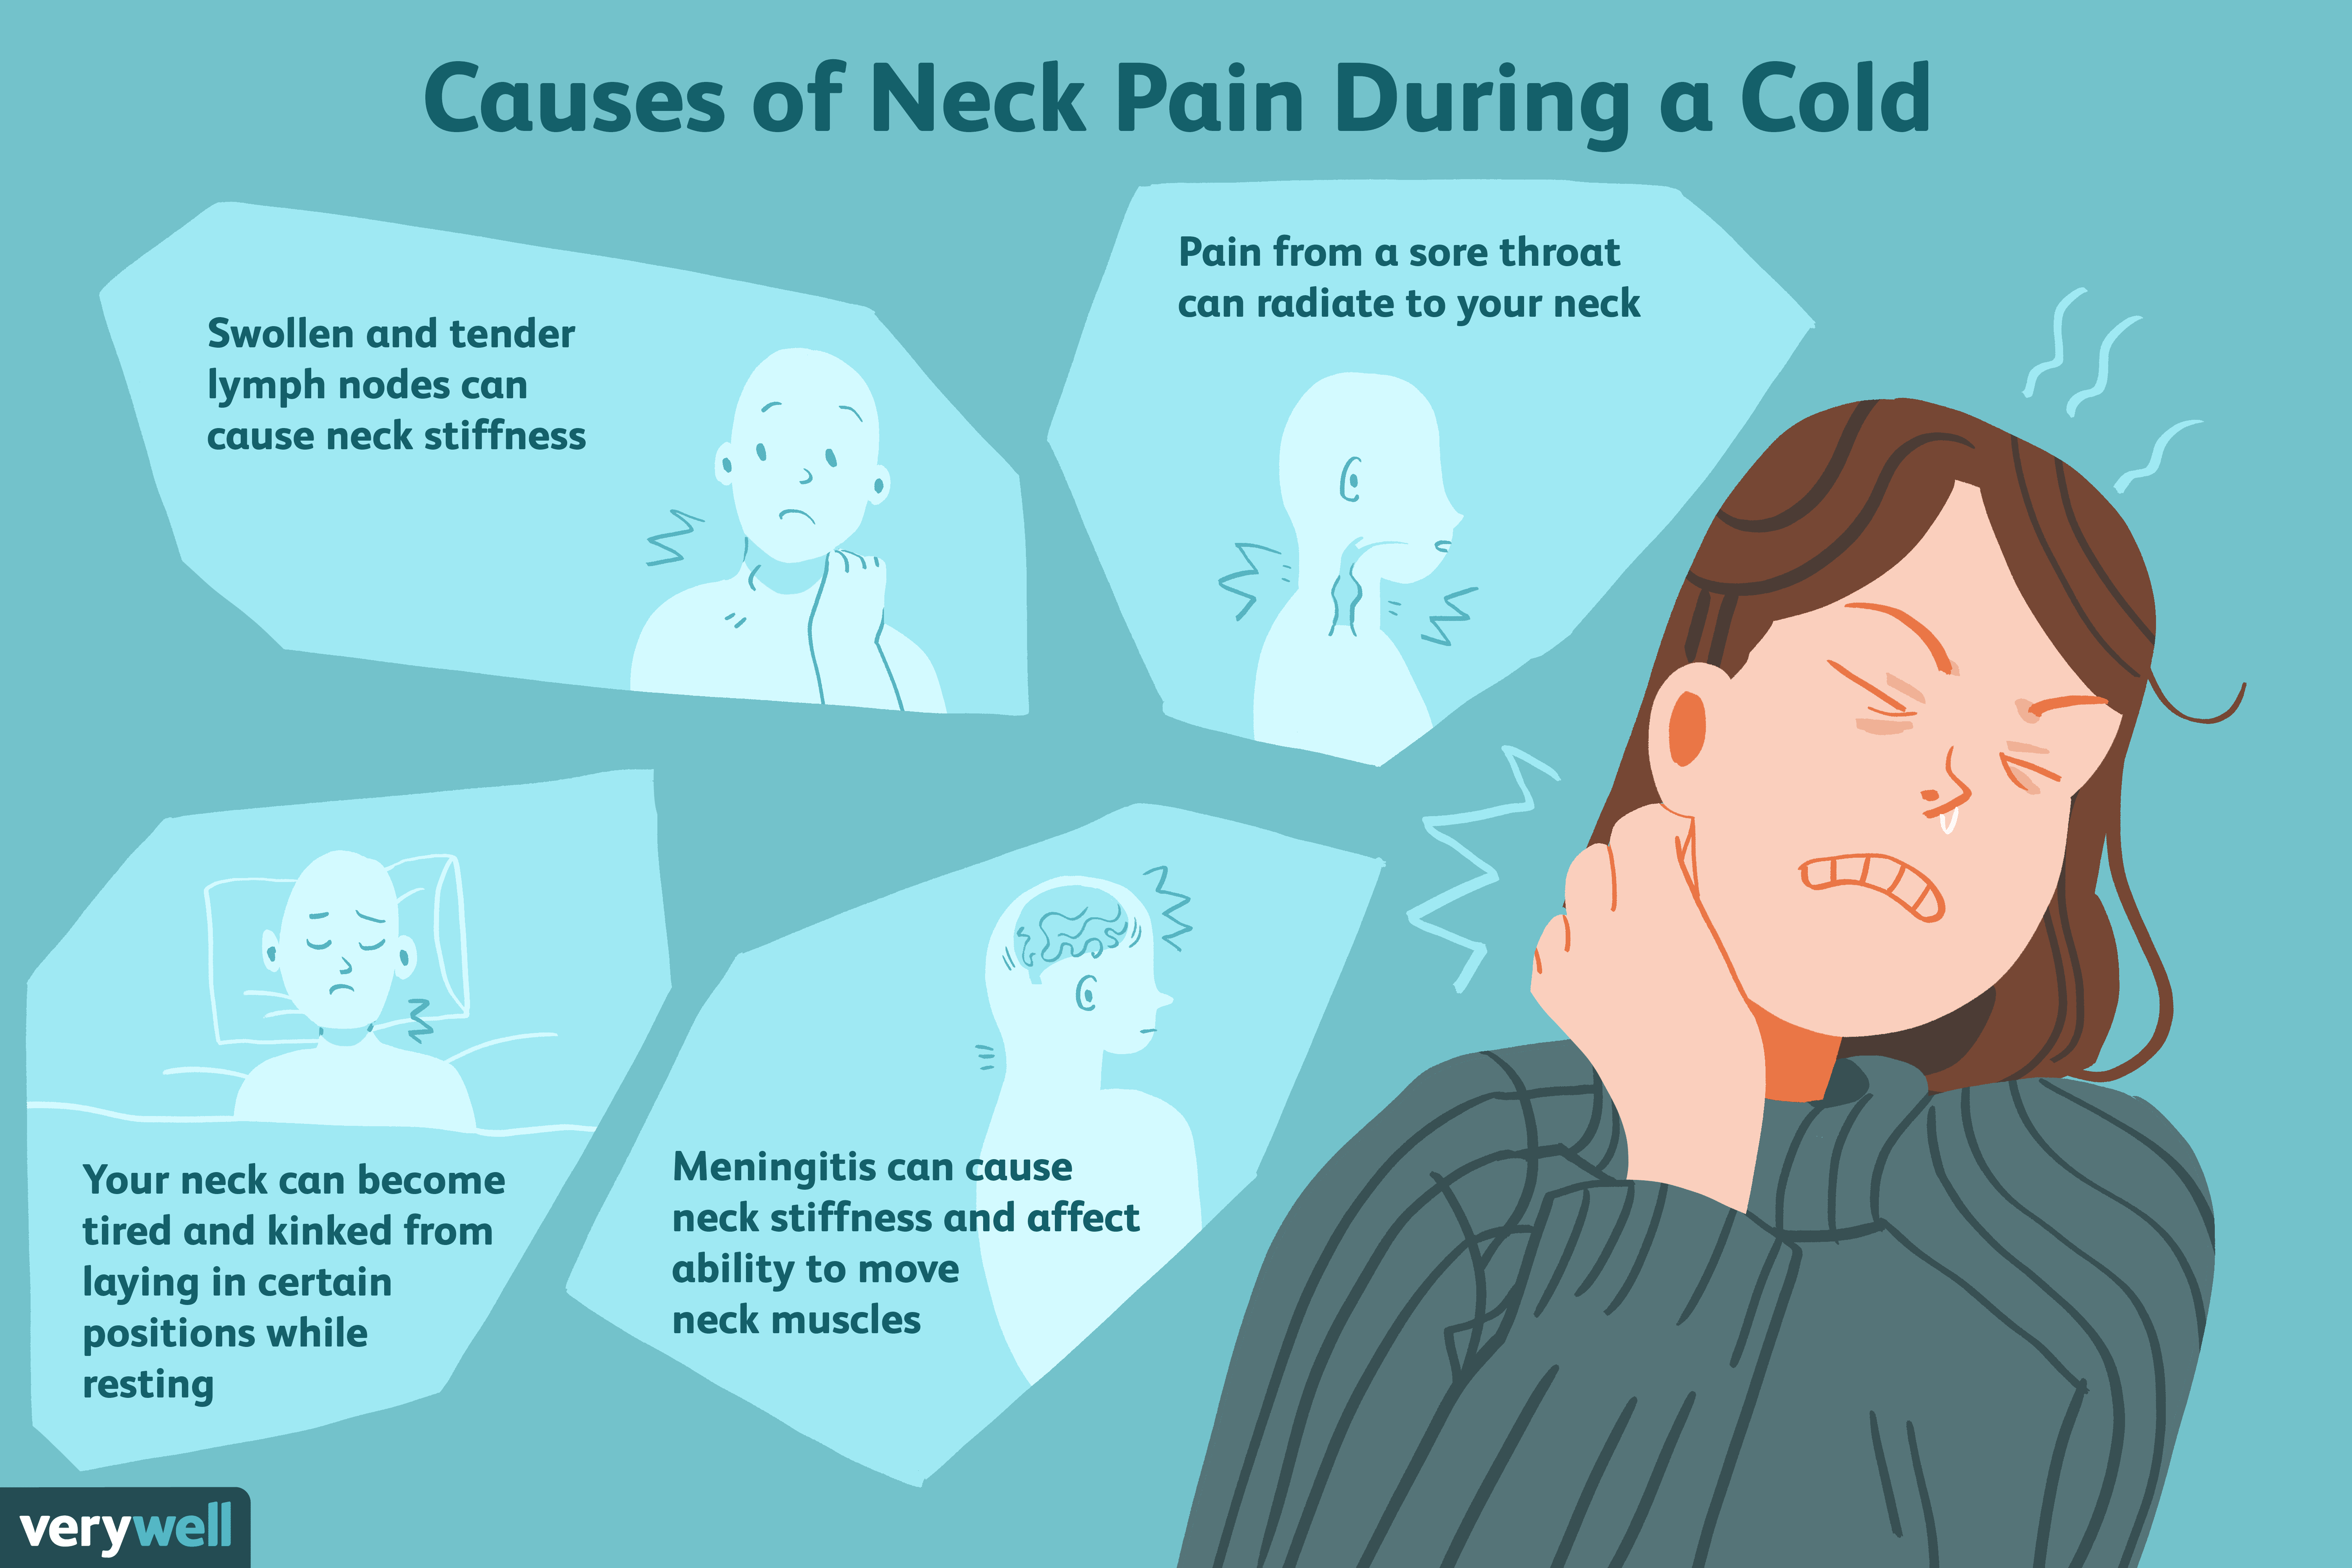 Is It Normal To Feel Neck Pain With A Cold